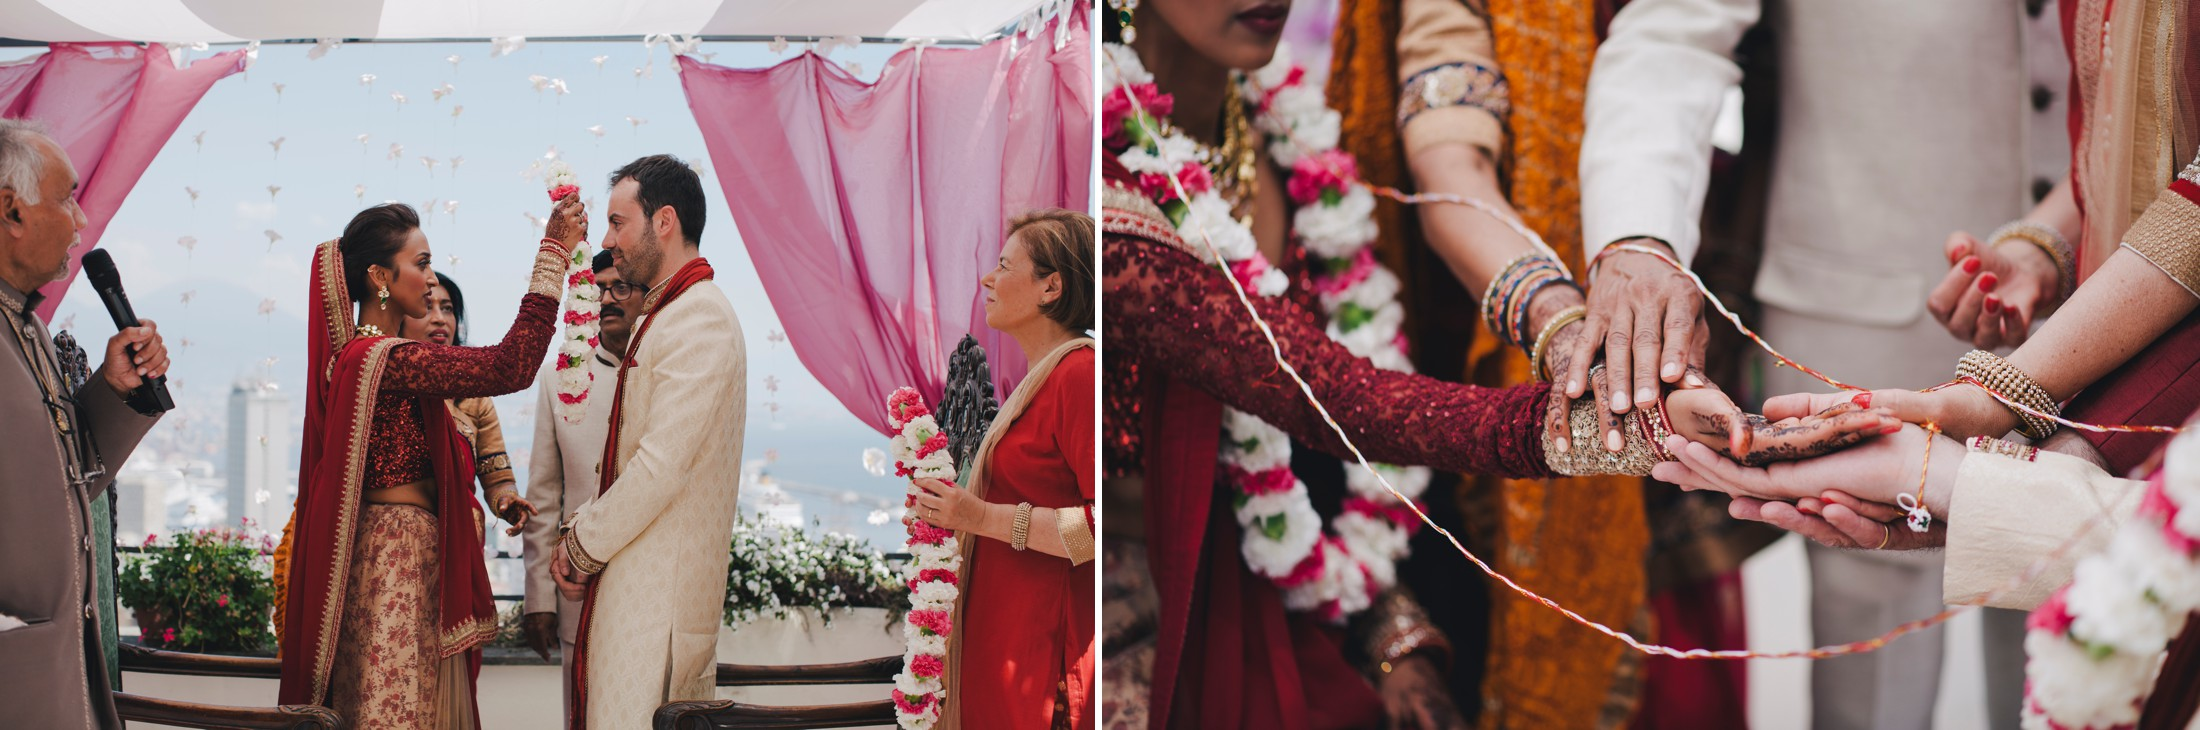 collage moments from the traditional indian wedding ceremony